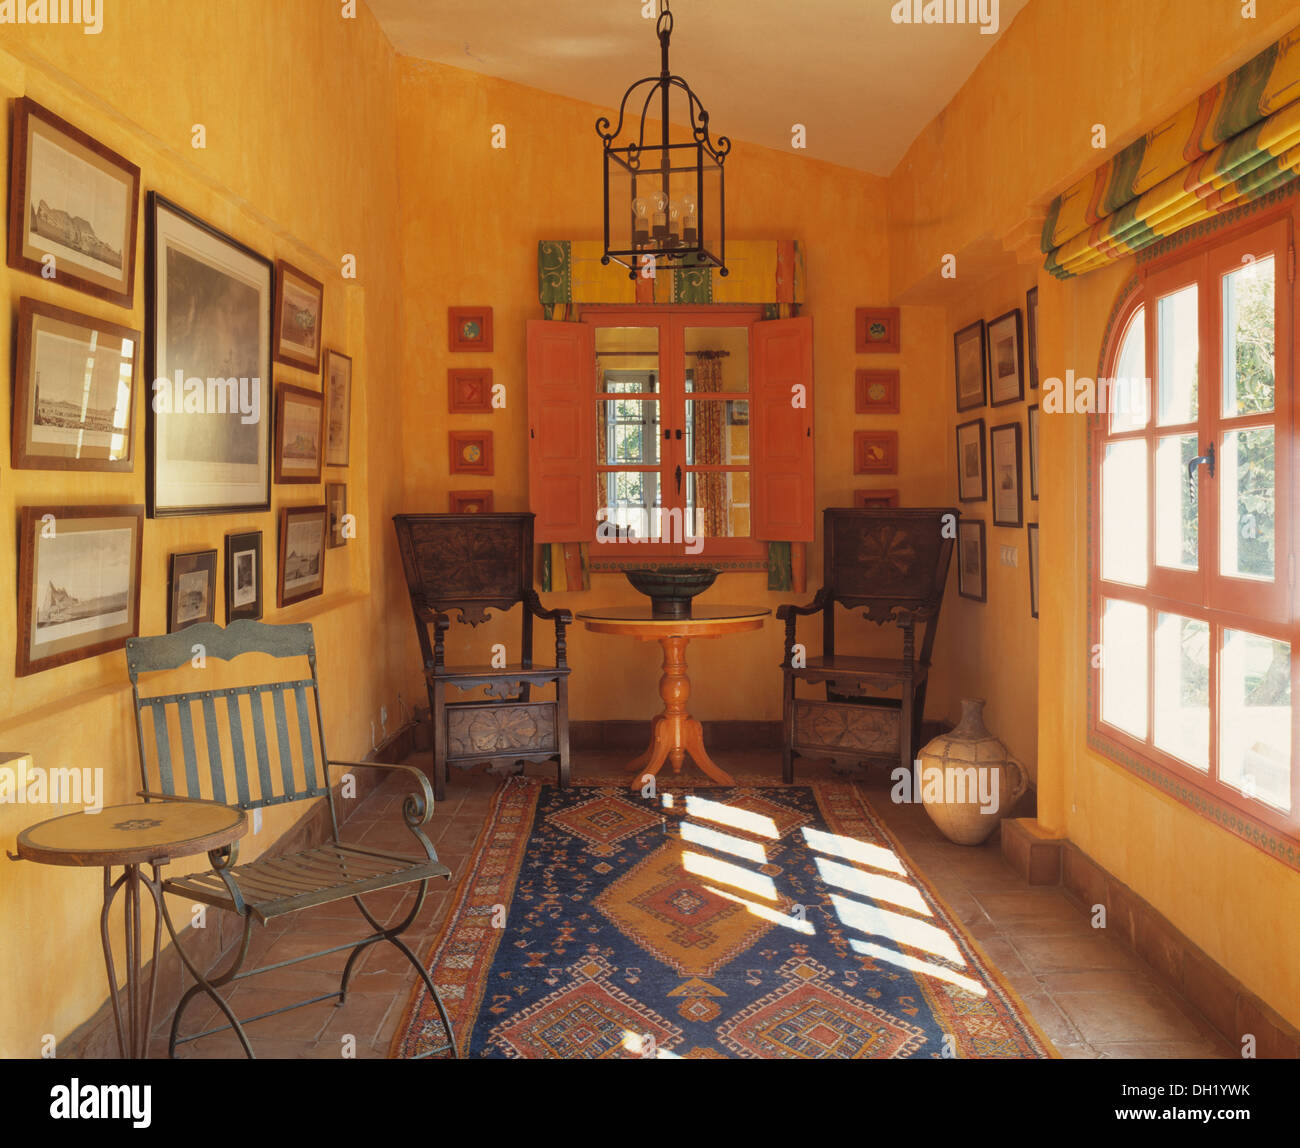 Patterned Rug In Yellow Spanish Dining Room With Antique Wooden Chairs At Painted Table Front Of Window Orange Shutters